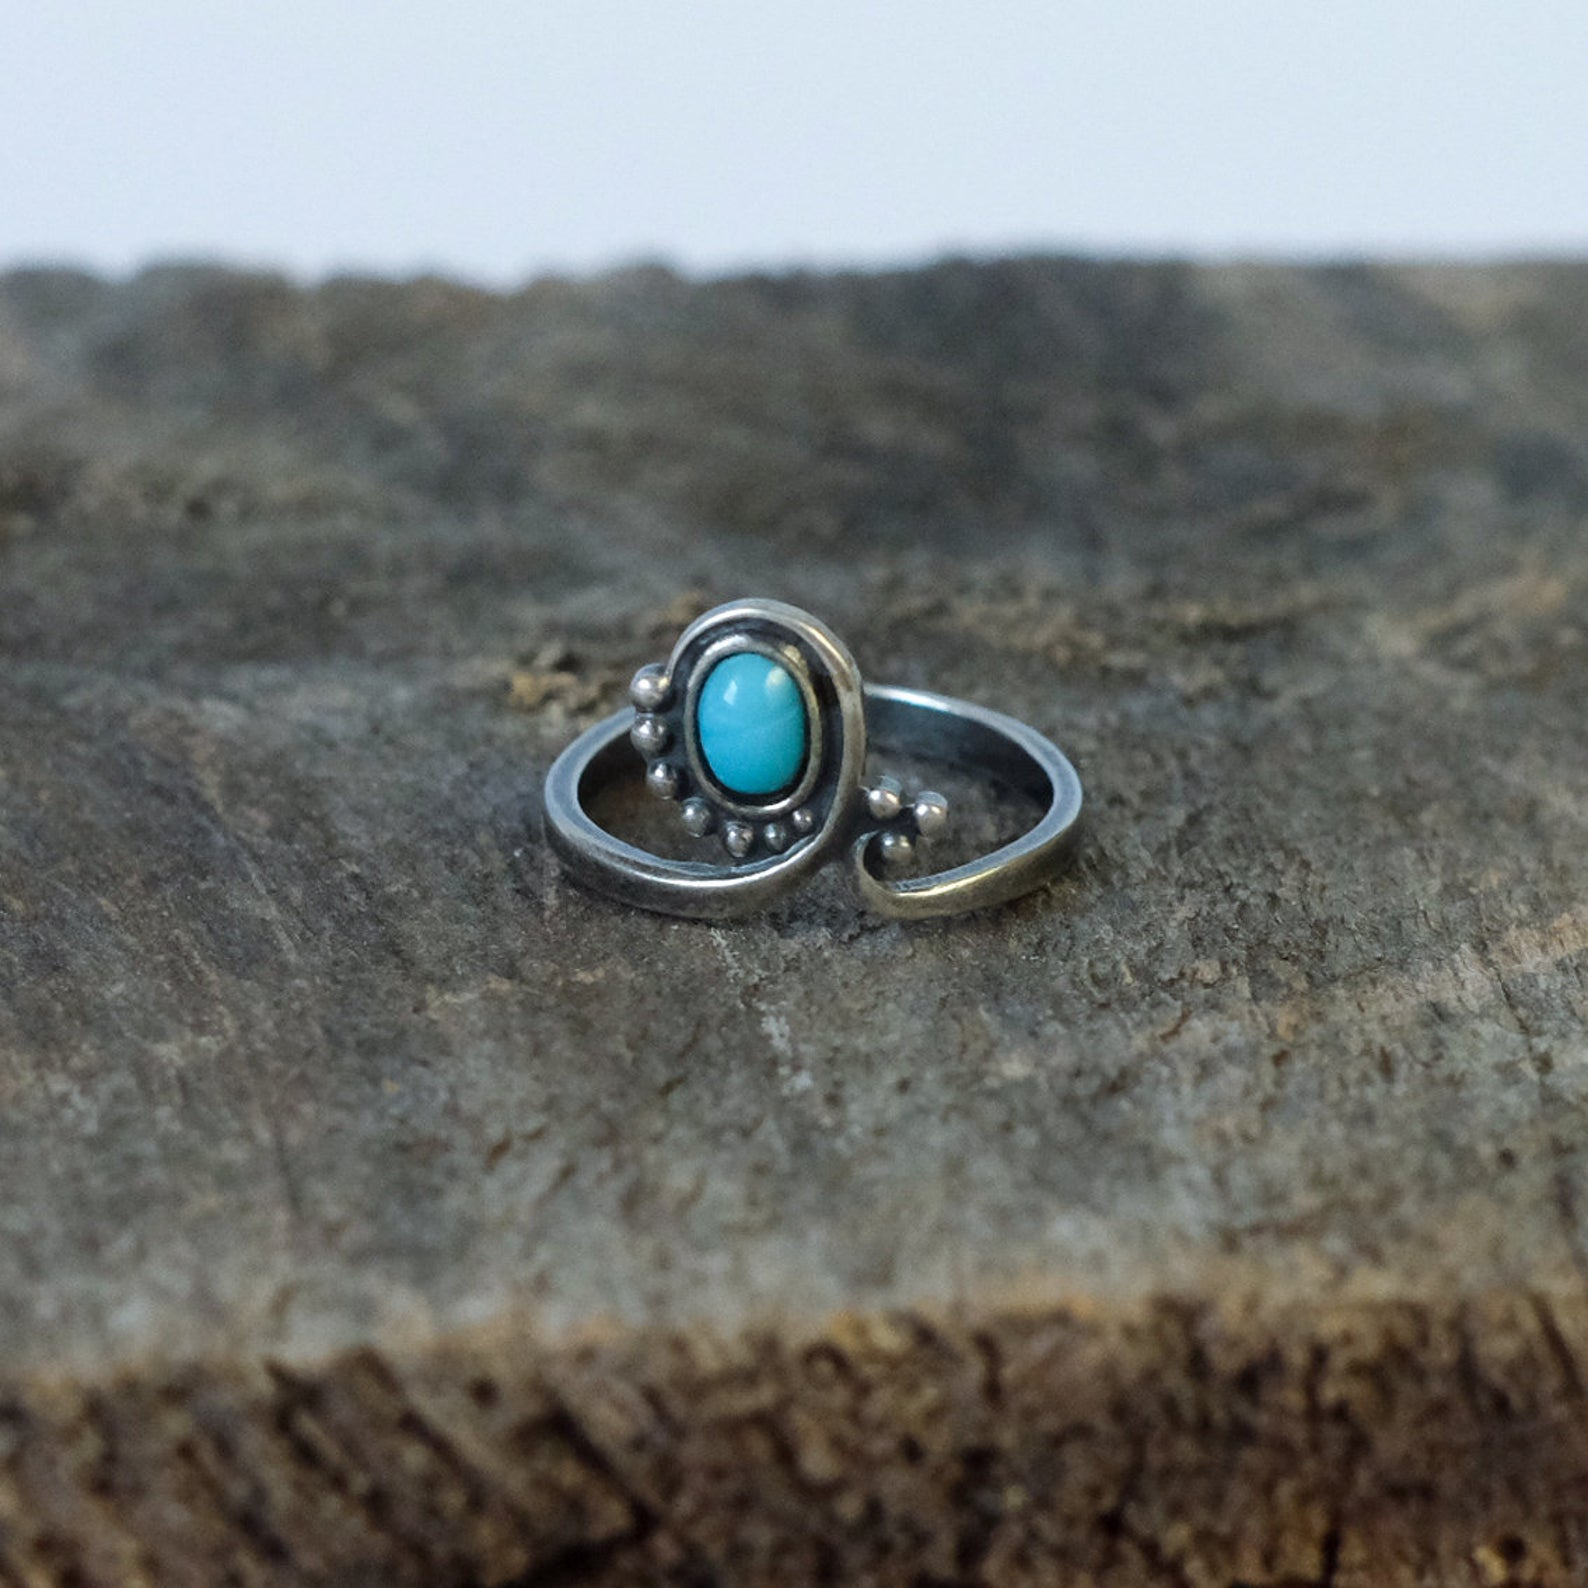 Vintage woman's ring with a turquoise gem. Hugged with a very vintage style silver shank.